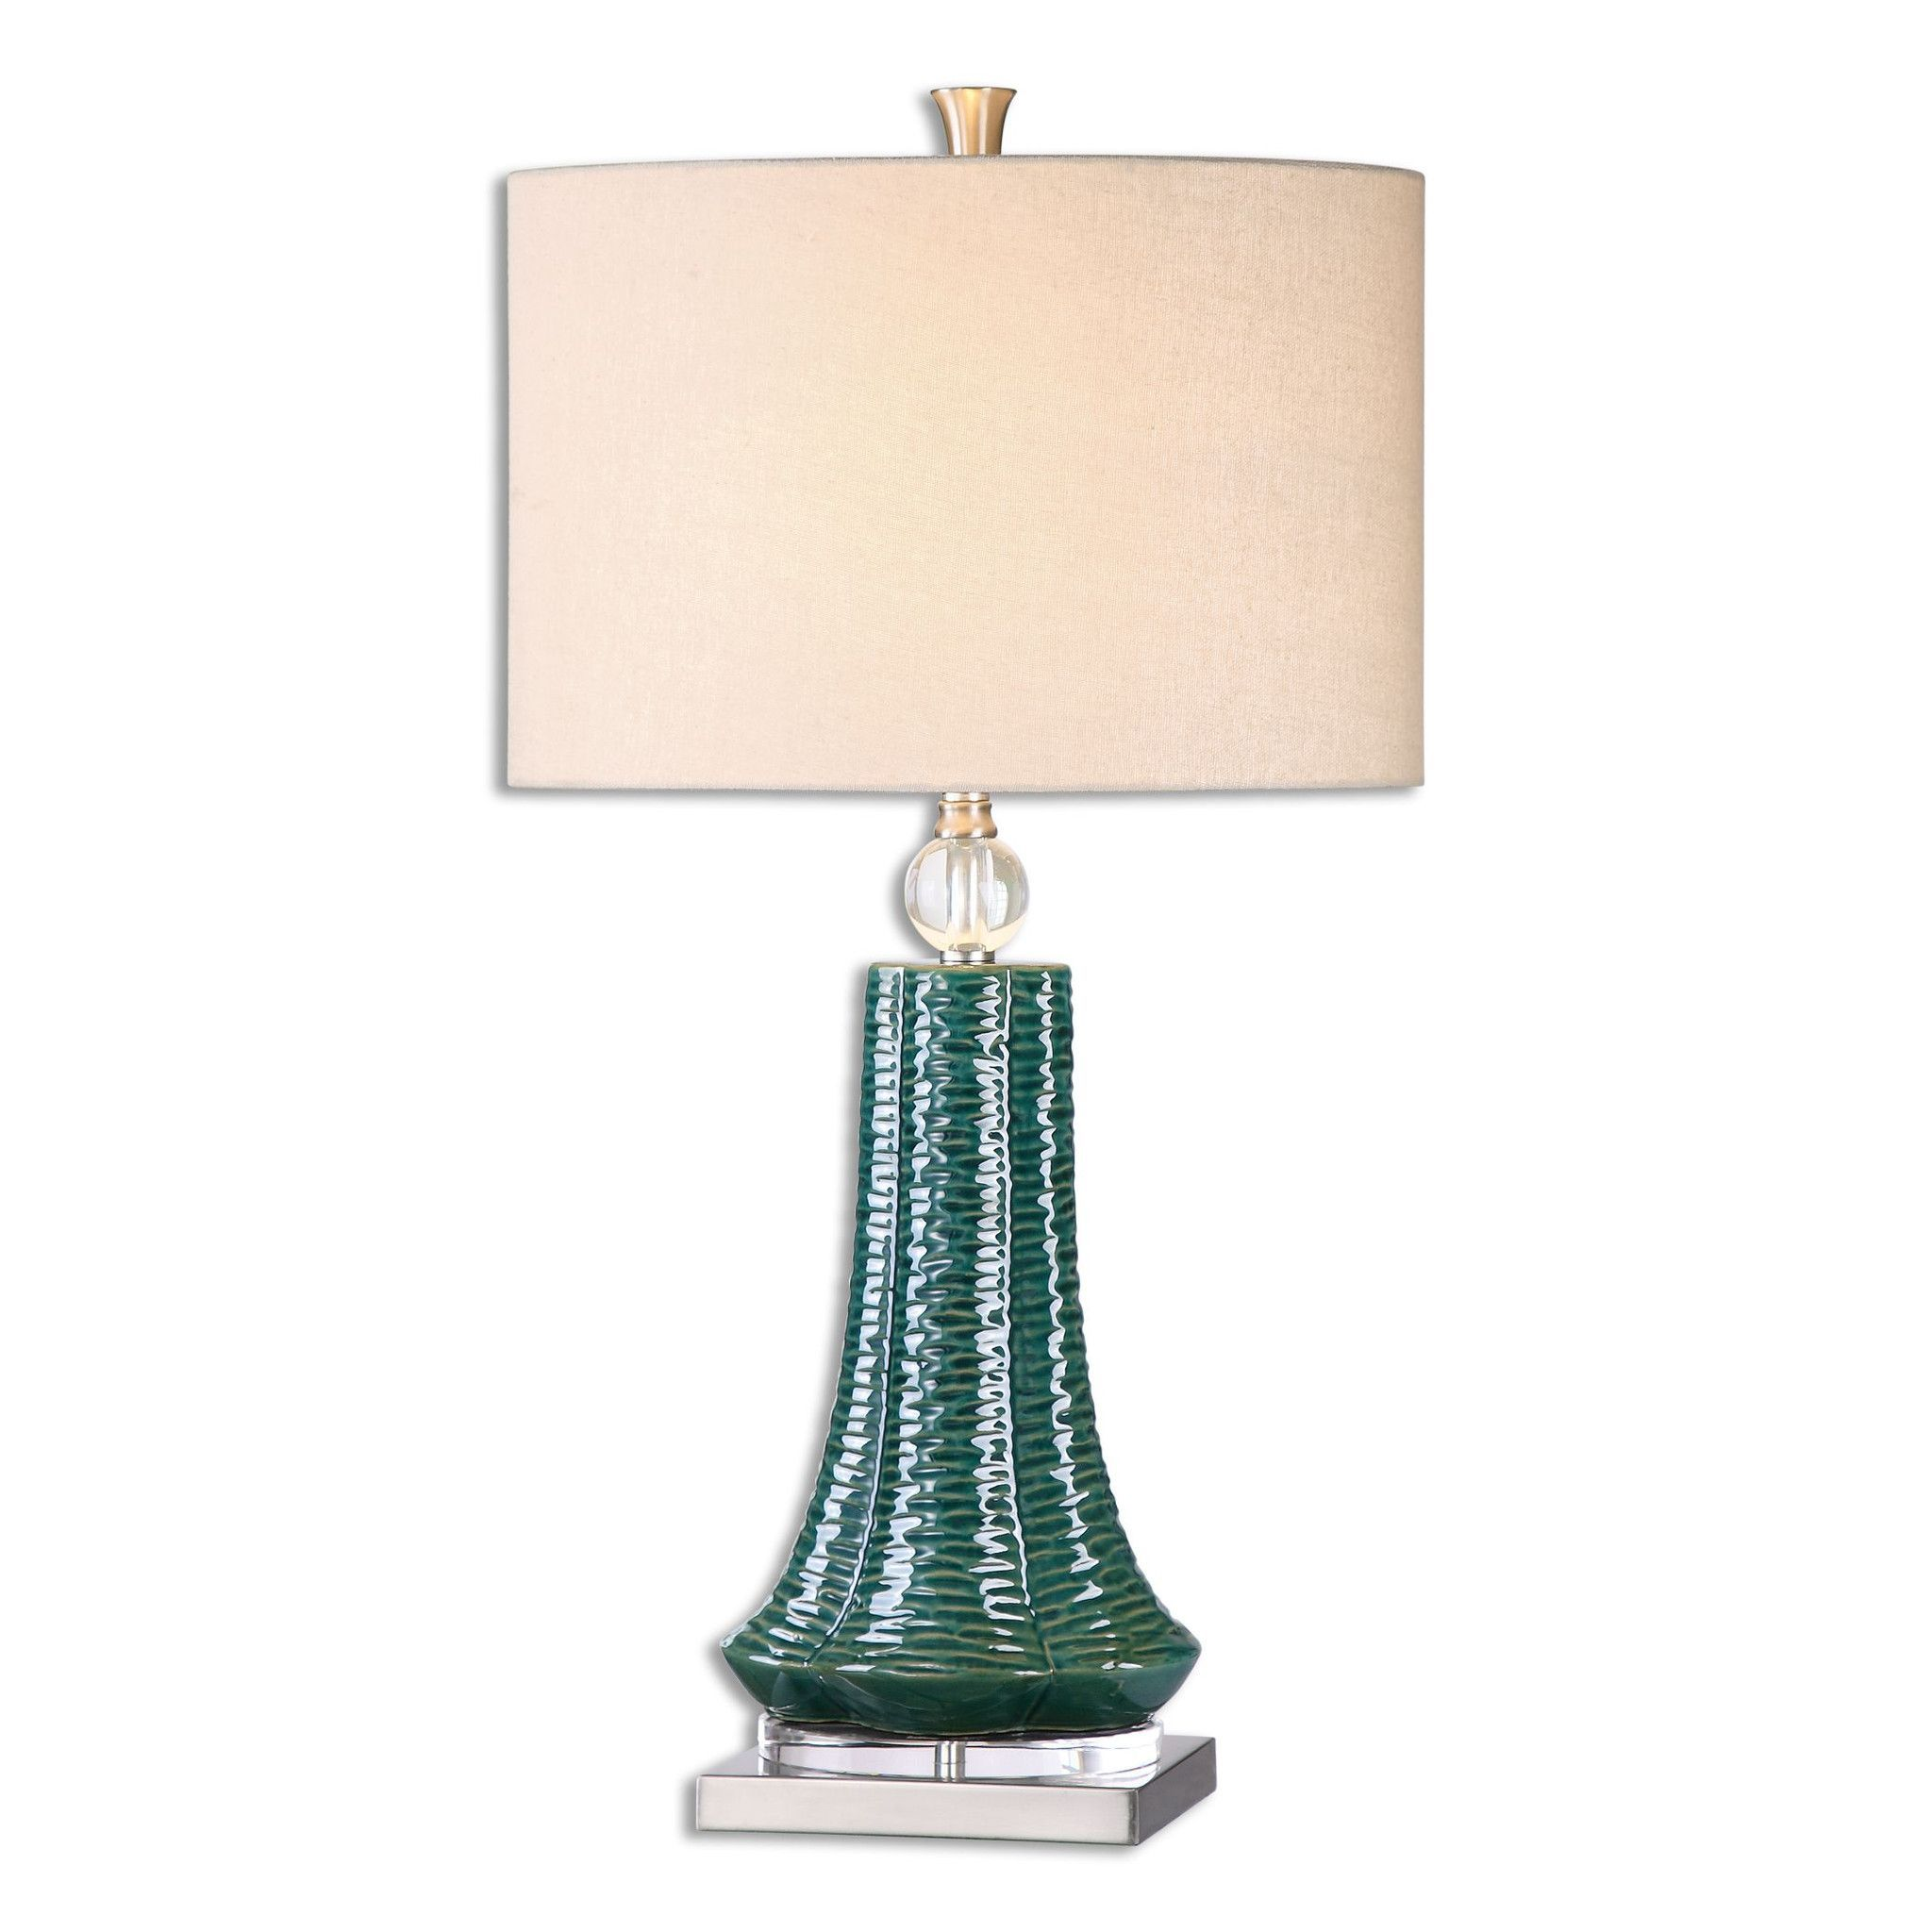 outstanding cheap for grey lamp side bedroom teal designer lamps most table originality